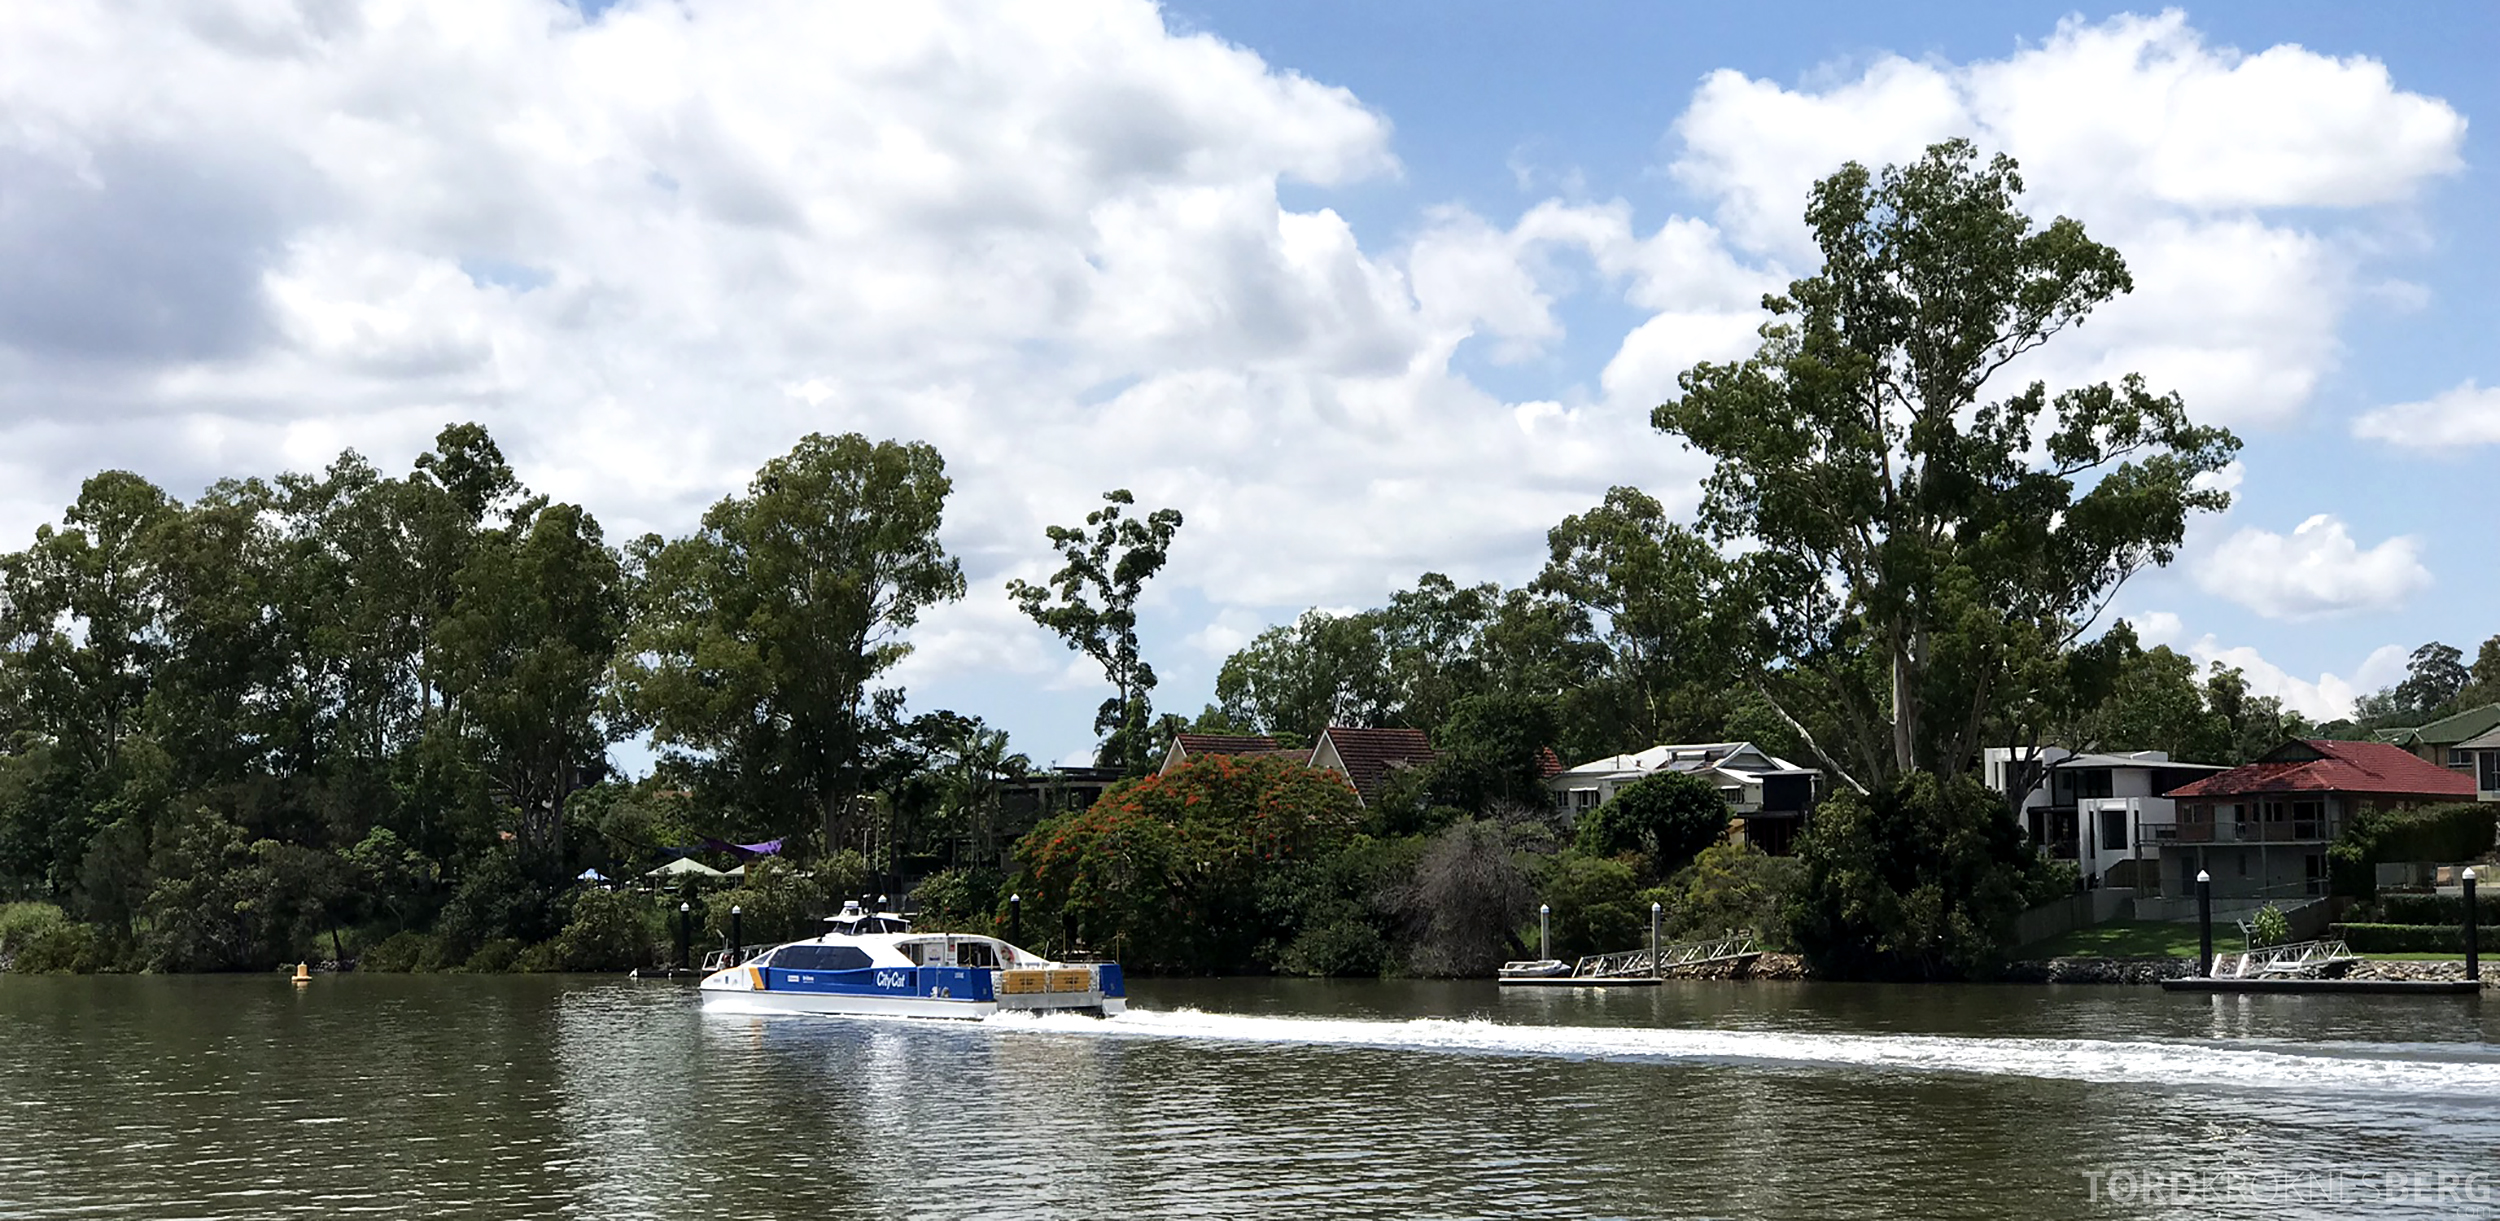 Lone Pine Koala Sanctuary Cruise Brisbane River